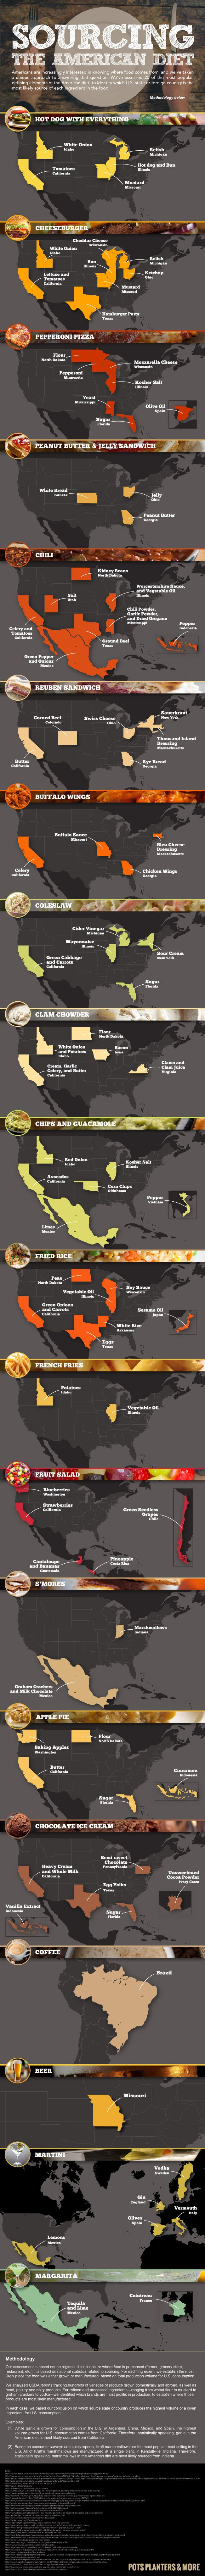 Americans have an increasing interest in where their food comes from. After researching the top 20 most popular food options in the United States, Pots Planters & More has created an infographic that identifies the top food sources for some of our most favorite meals. They looked at which U.S. state or foreign country is the most likely source of each ingredient in the food.